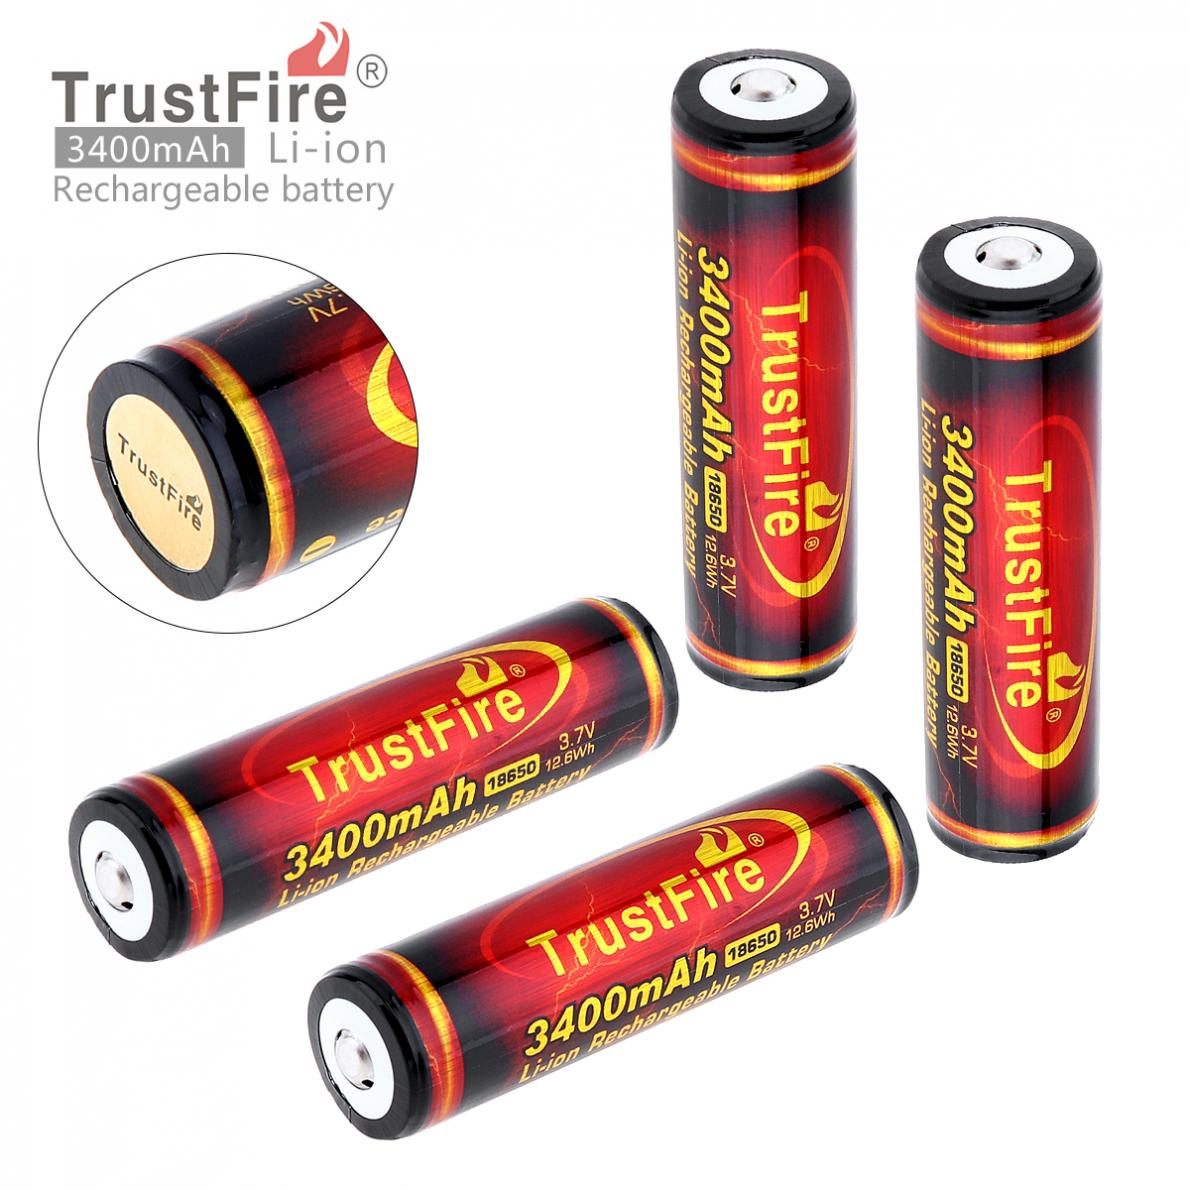 4pcs TrustFire 3.7V 3400mAh 18650 Li-ion Rechargeable Battery High Capacity with Protected PCB for LED Flashlights /Headlamps цена